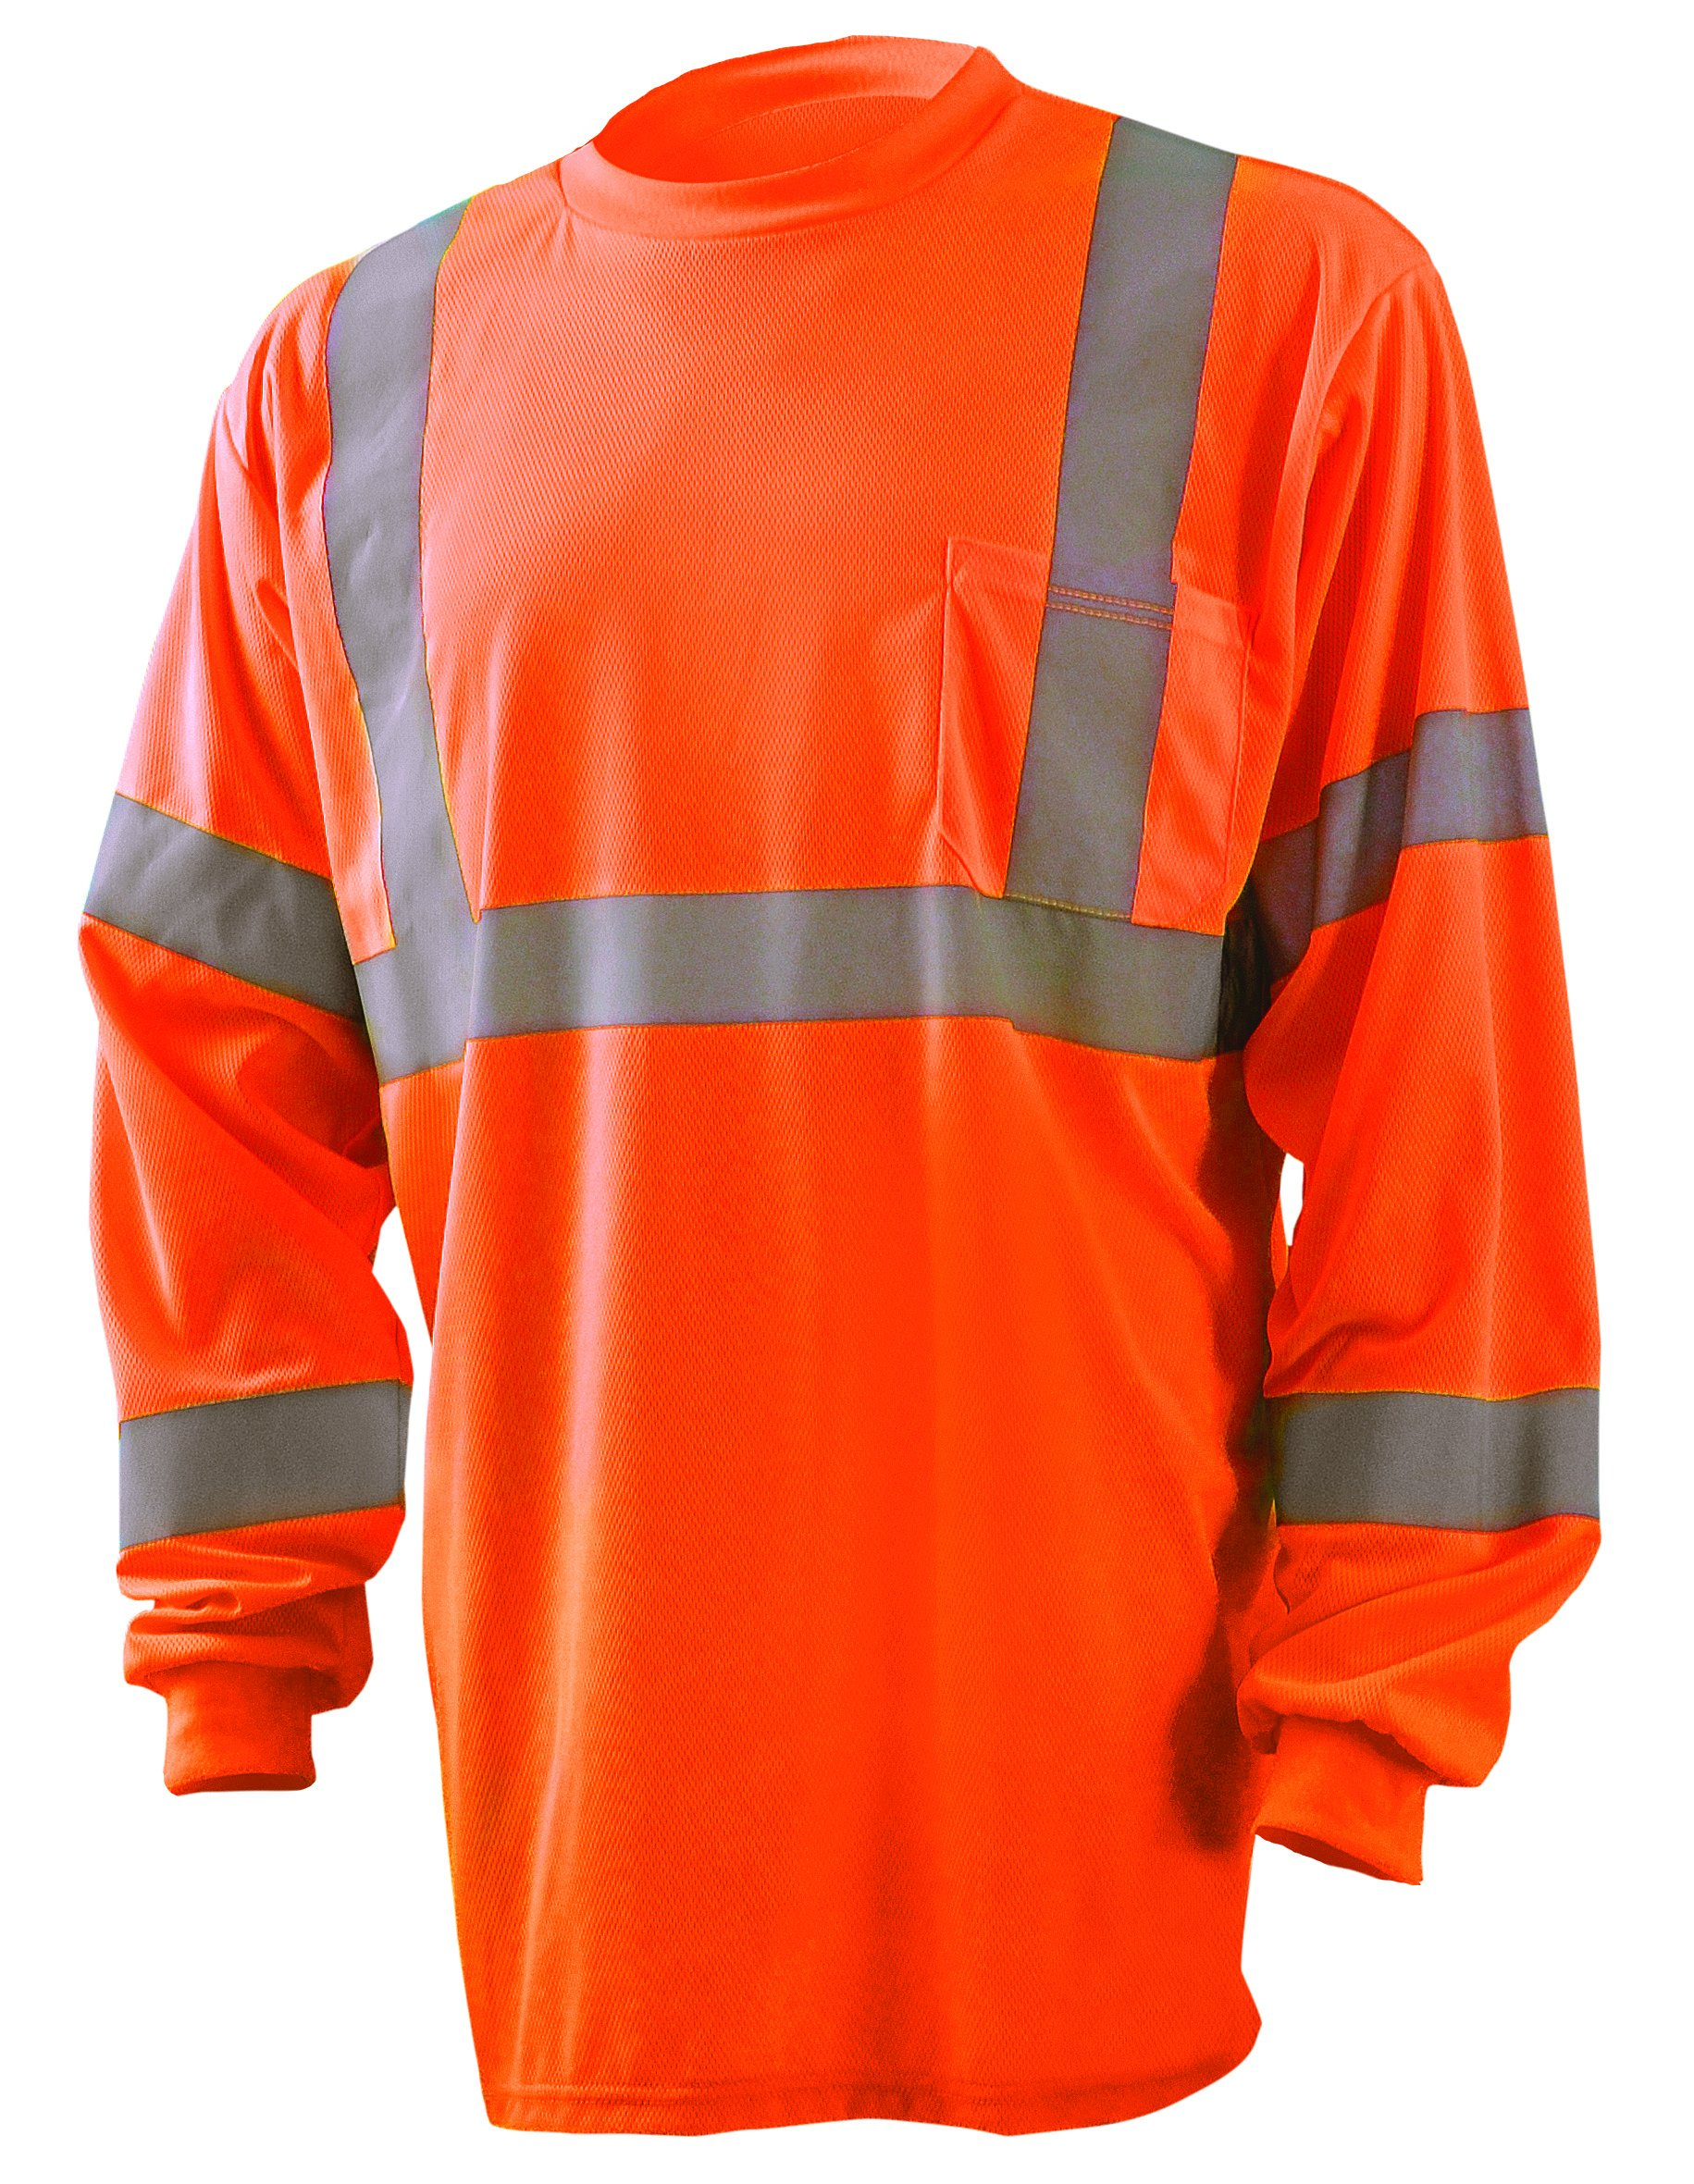 Occunomix LUX-LSETP3B-OL Long Sleeve Wicking Birdseye High Visibility T-Shirt, Class 3, Large, Orange